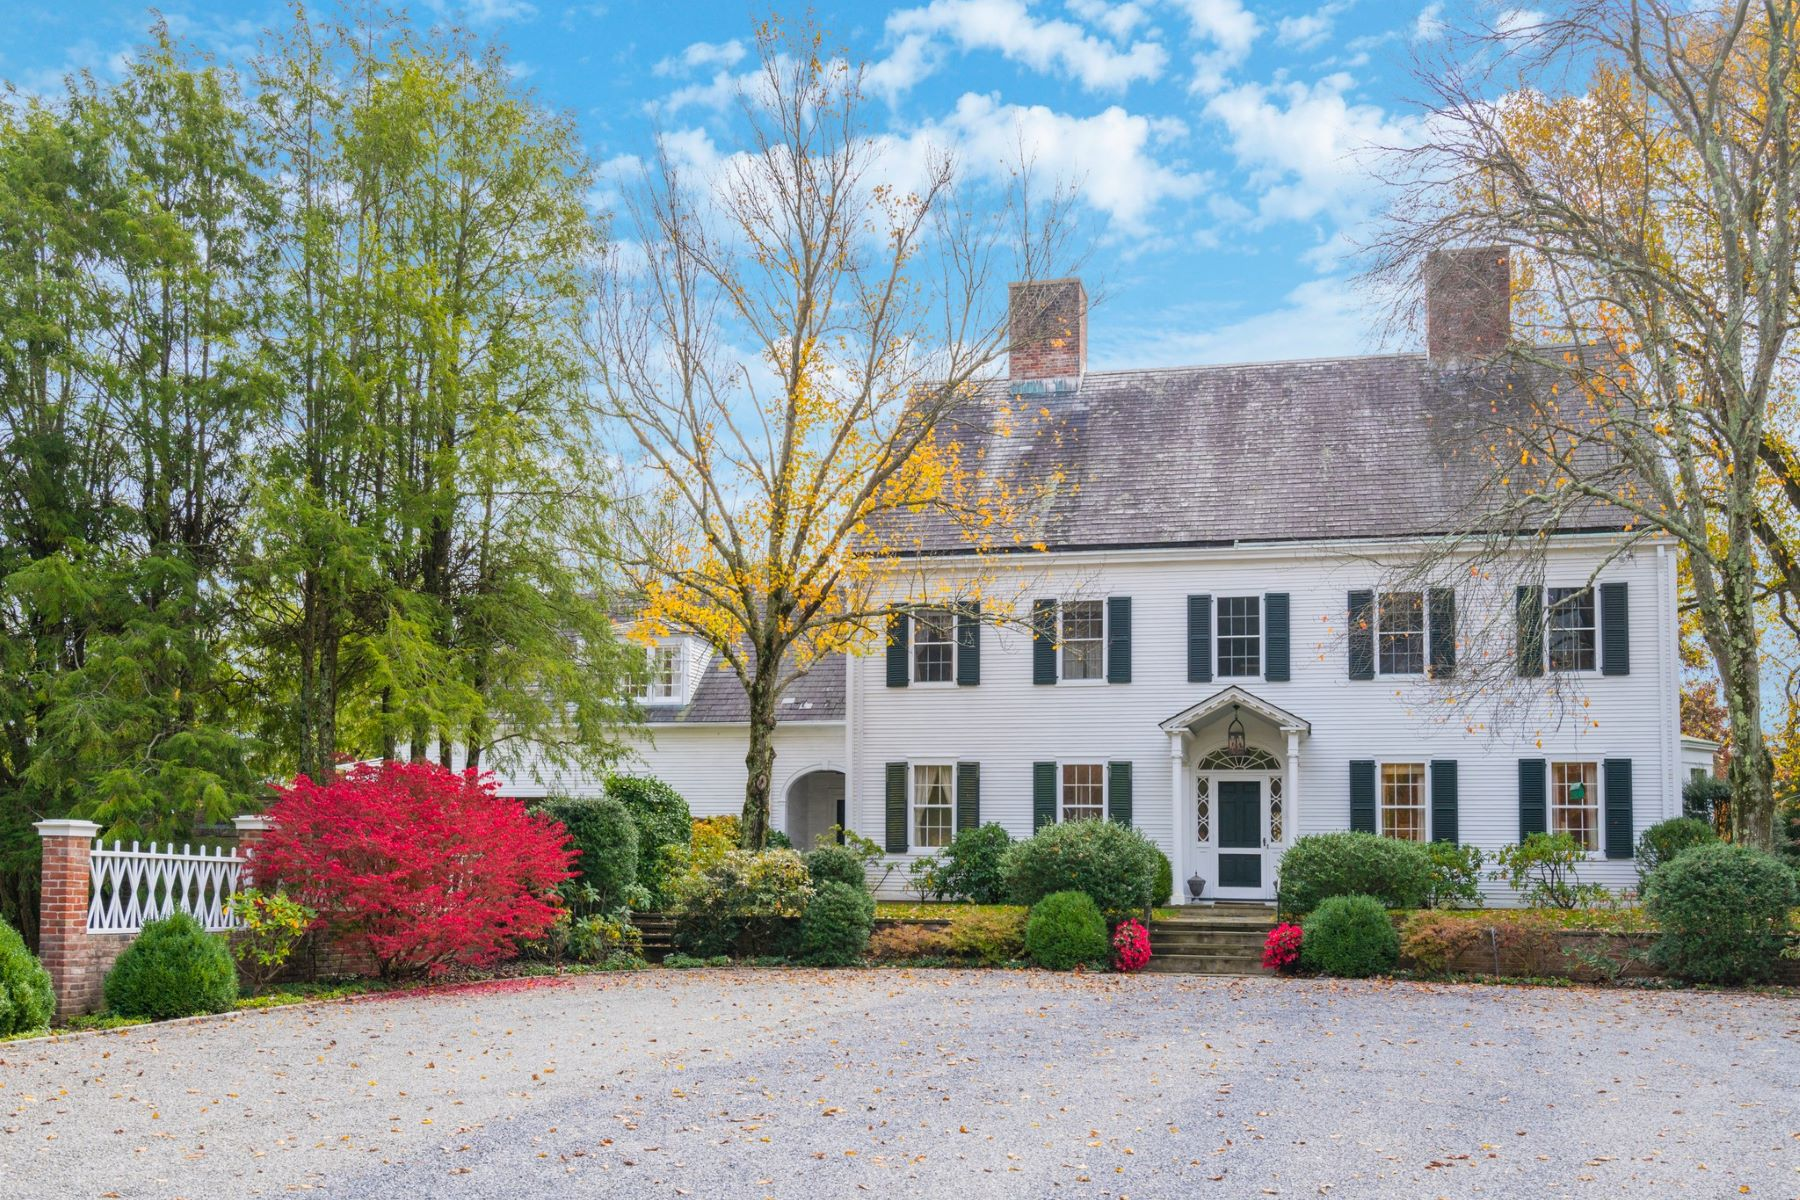 Single Family Homes for Sale at Oyster Bay Cove 45 Shutter Lane Oyster Bay Cove, New York 11771 United States